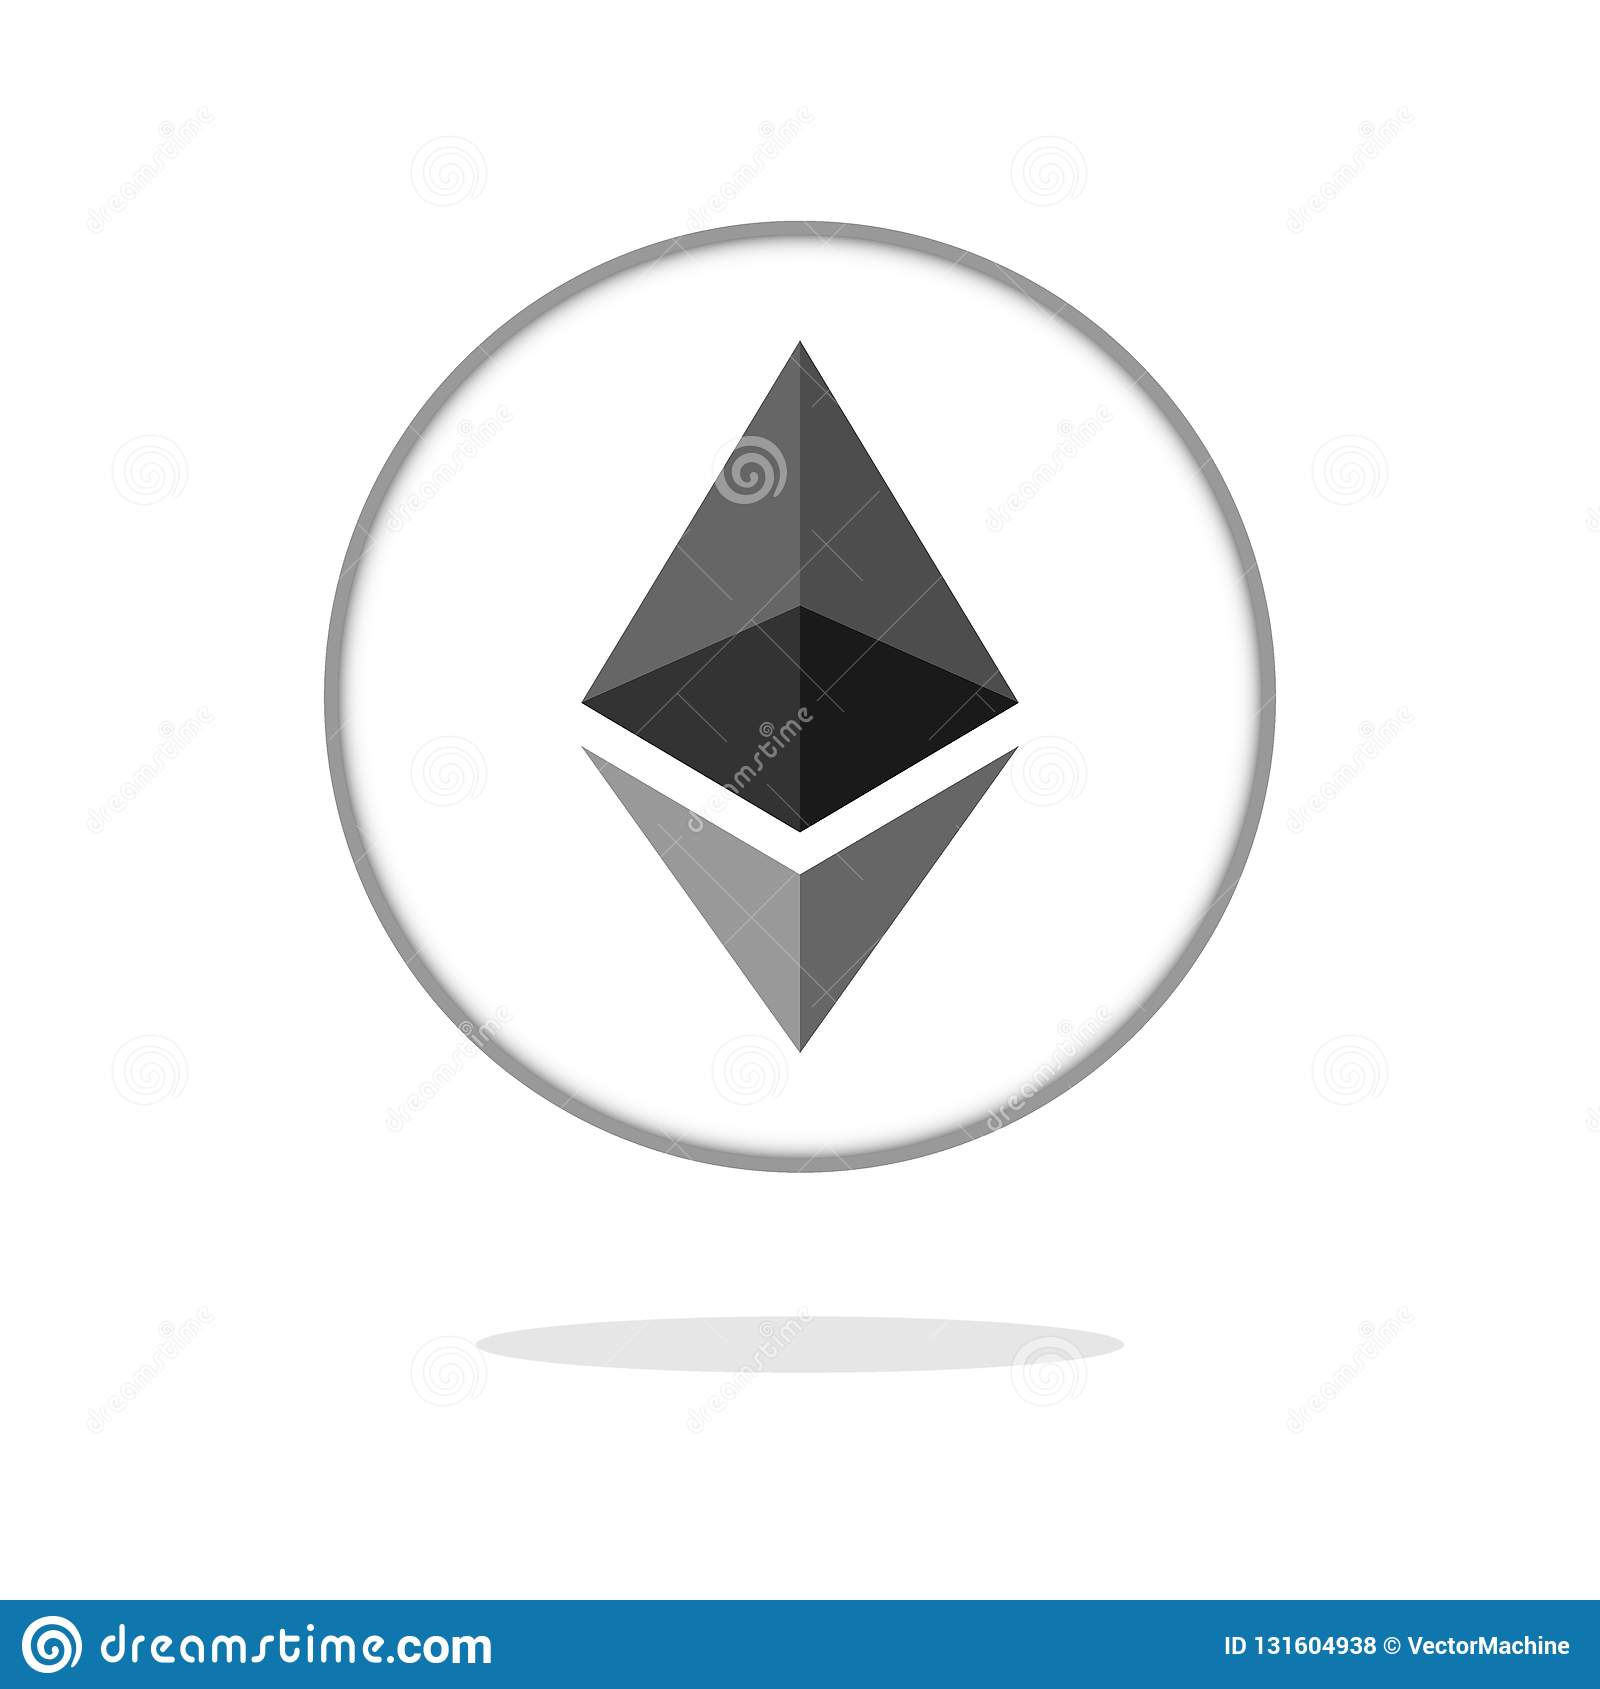 Ethereum Crypto Currency Coin Ether Chrystal Art Icon For Apps And